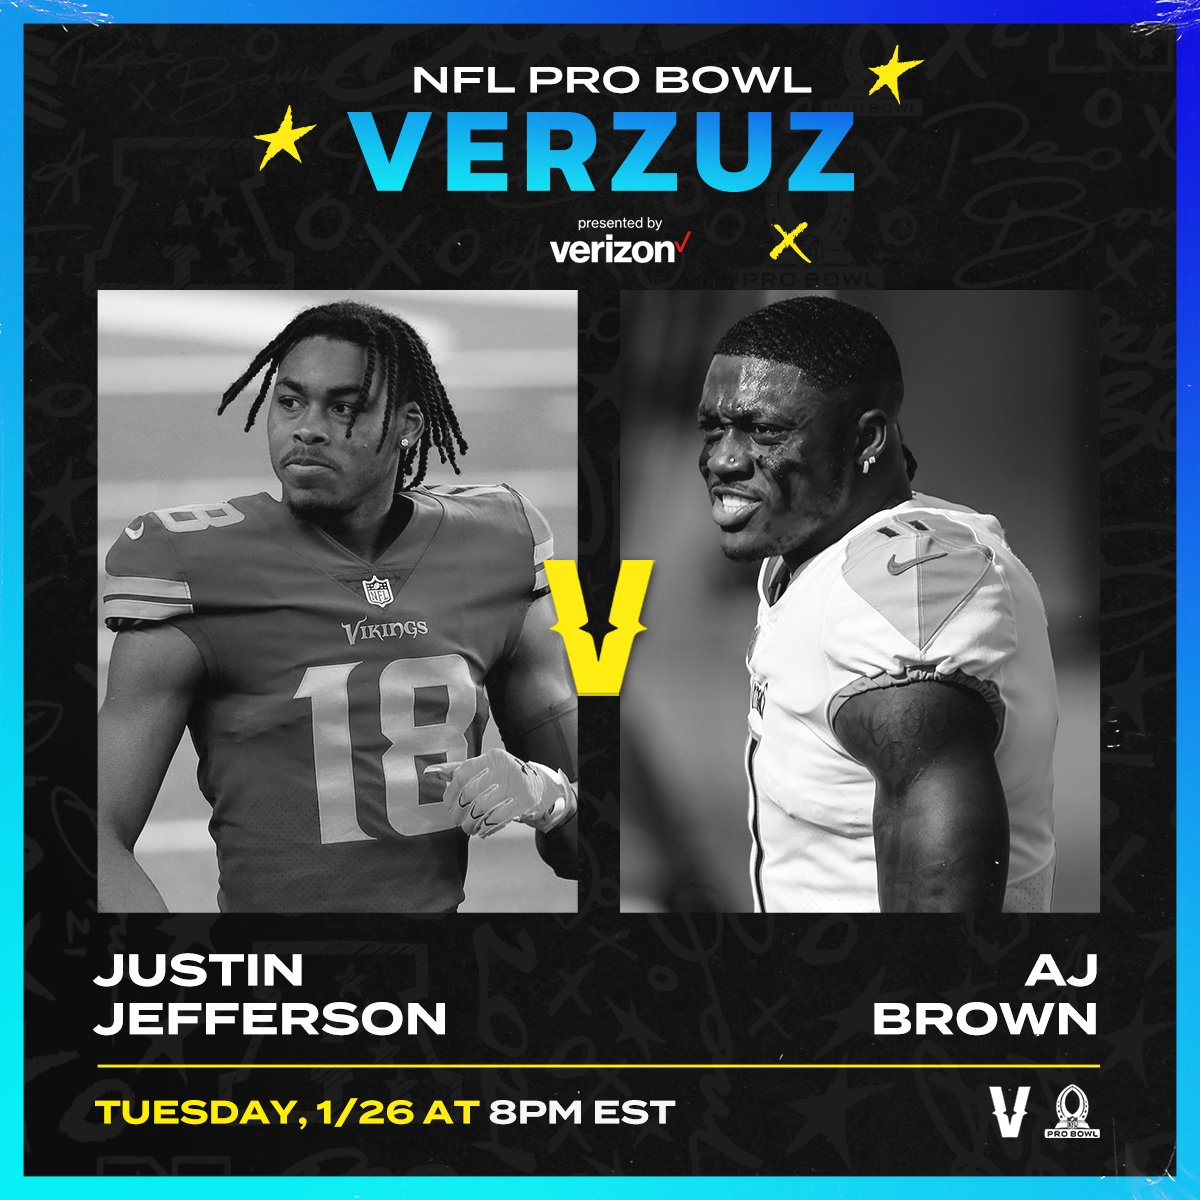 .@JJettas2 vs. @1kalwaysopen_ in the first edition of #NFLProBowlVerzuz!  Tune in Tuesday 8pm ET | Live on NFL Twitter @verzuzonline